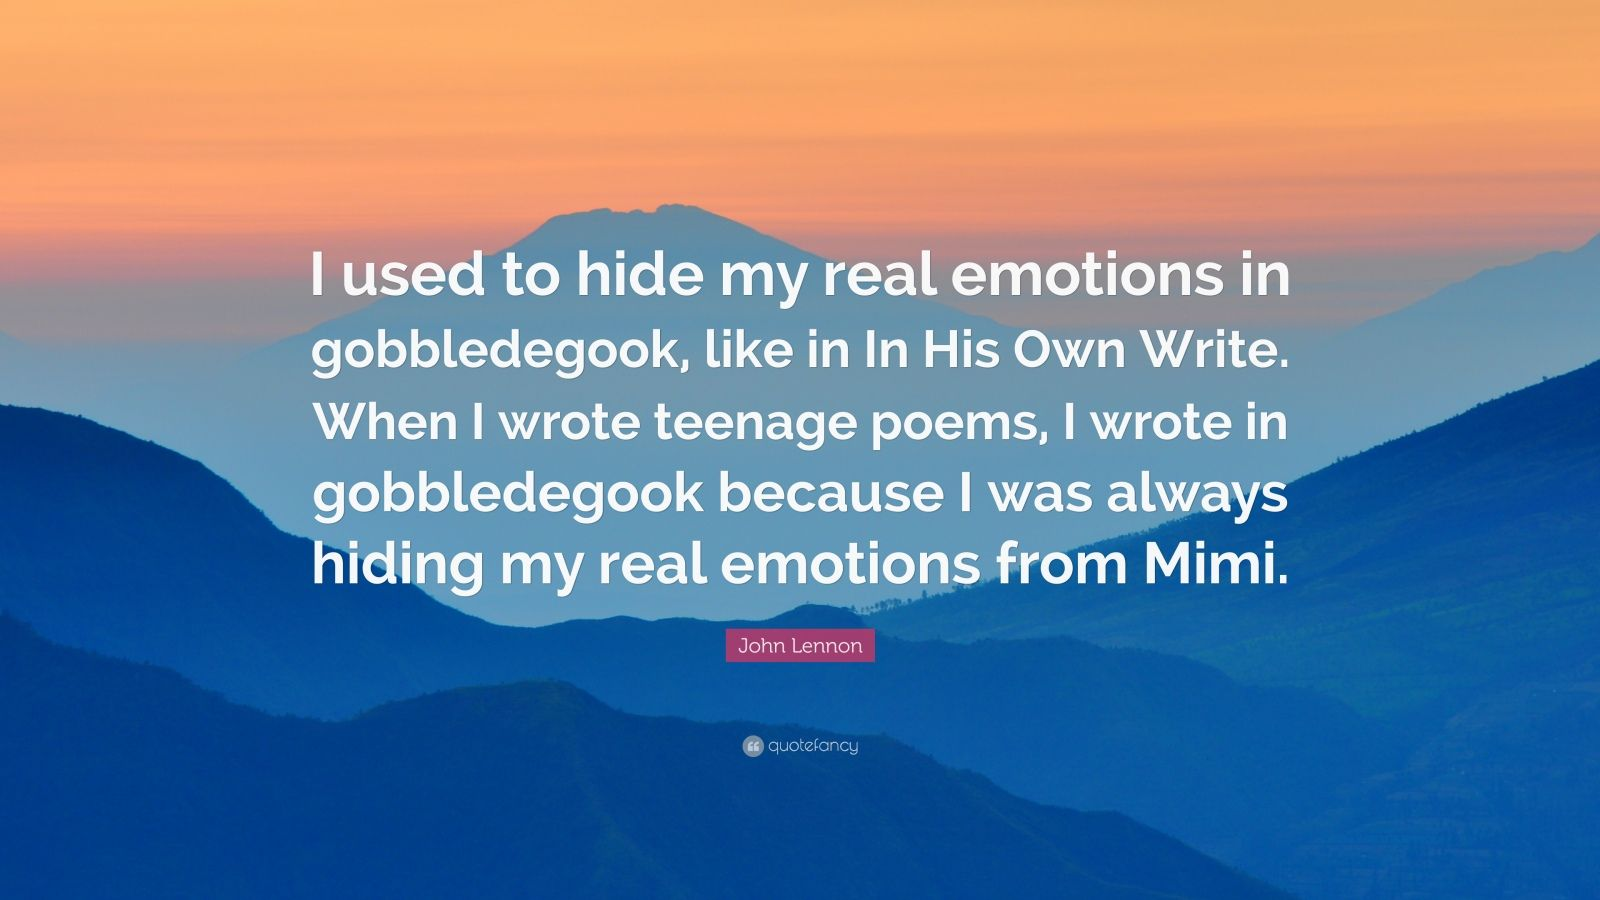 """John Lennon Quote: """"I used to hide my real emotions in gobbledegook, like in In His Own Write. When I wrote teenage poems, I wrote in gobbledegook because I was always hiding my real emotions from Mimi."""""""